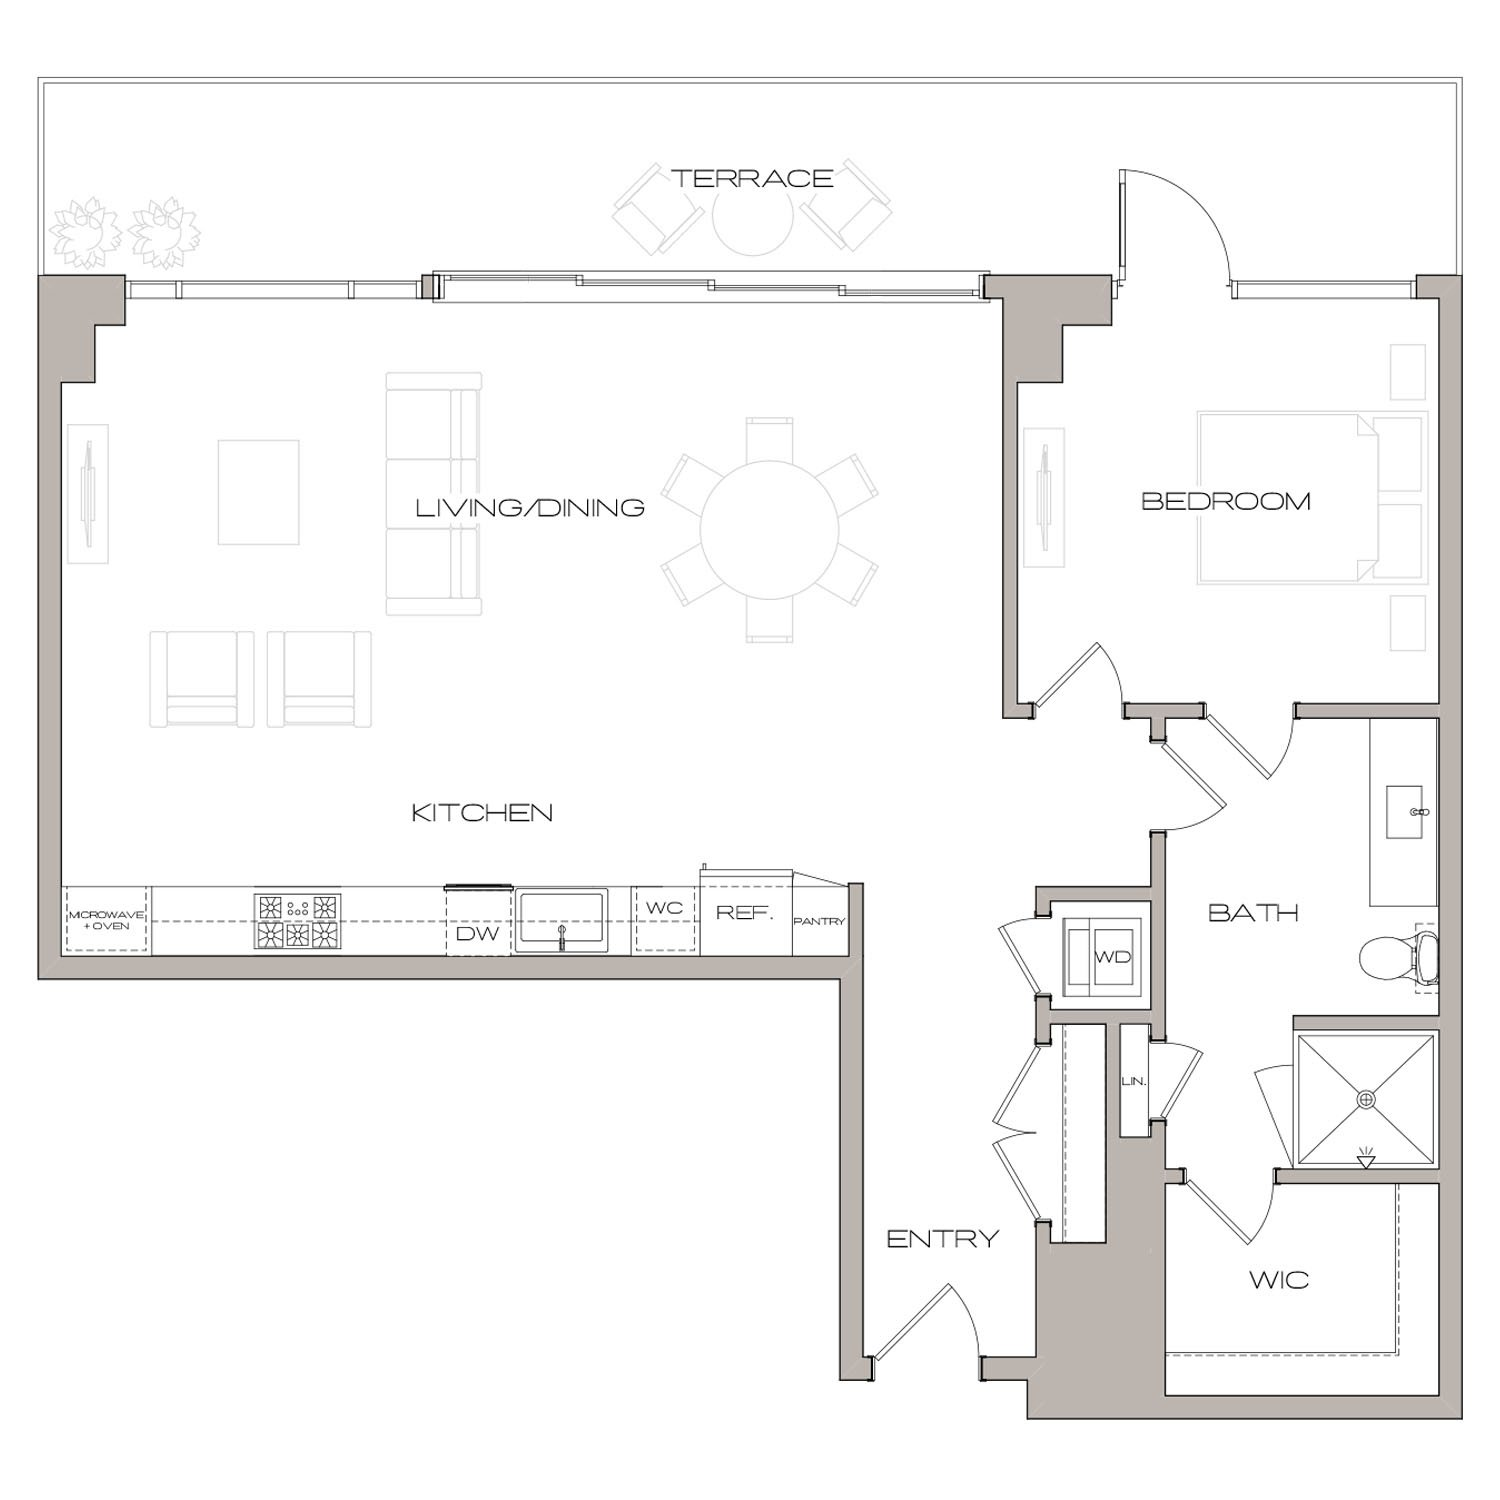 P H 4 floor plan diagram. Penthouse apartment with one bedroom, one bathroom, an open kitchen living and dining area, a terrace, and a washer dryer.